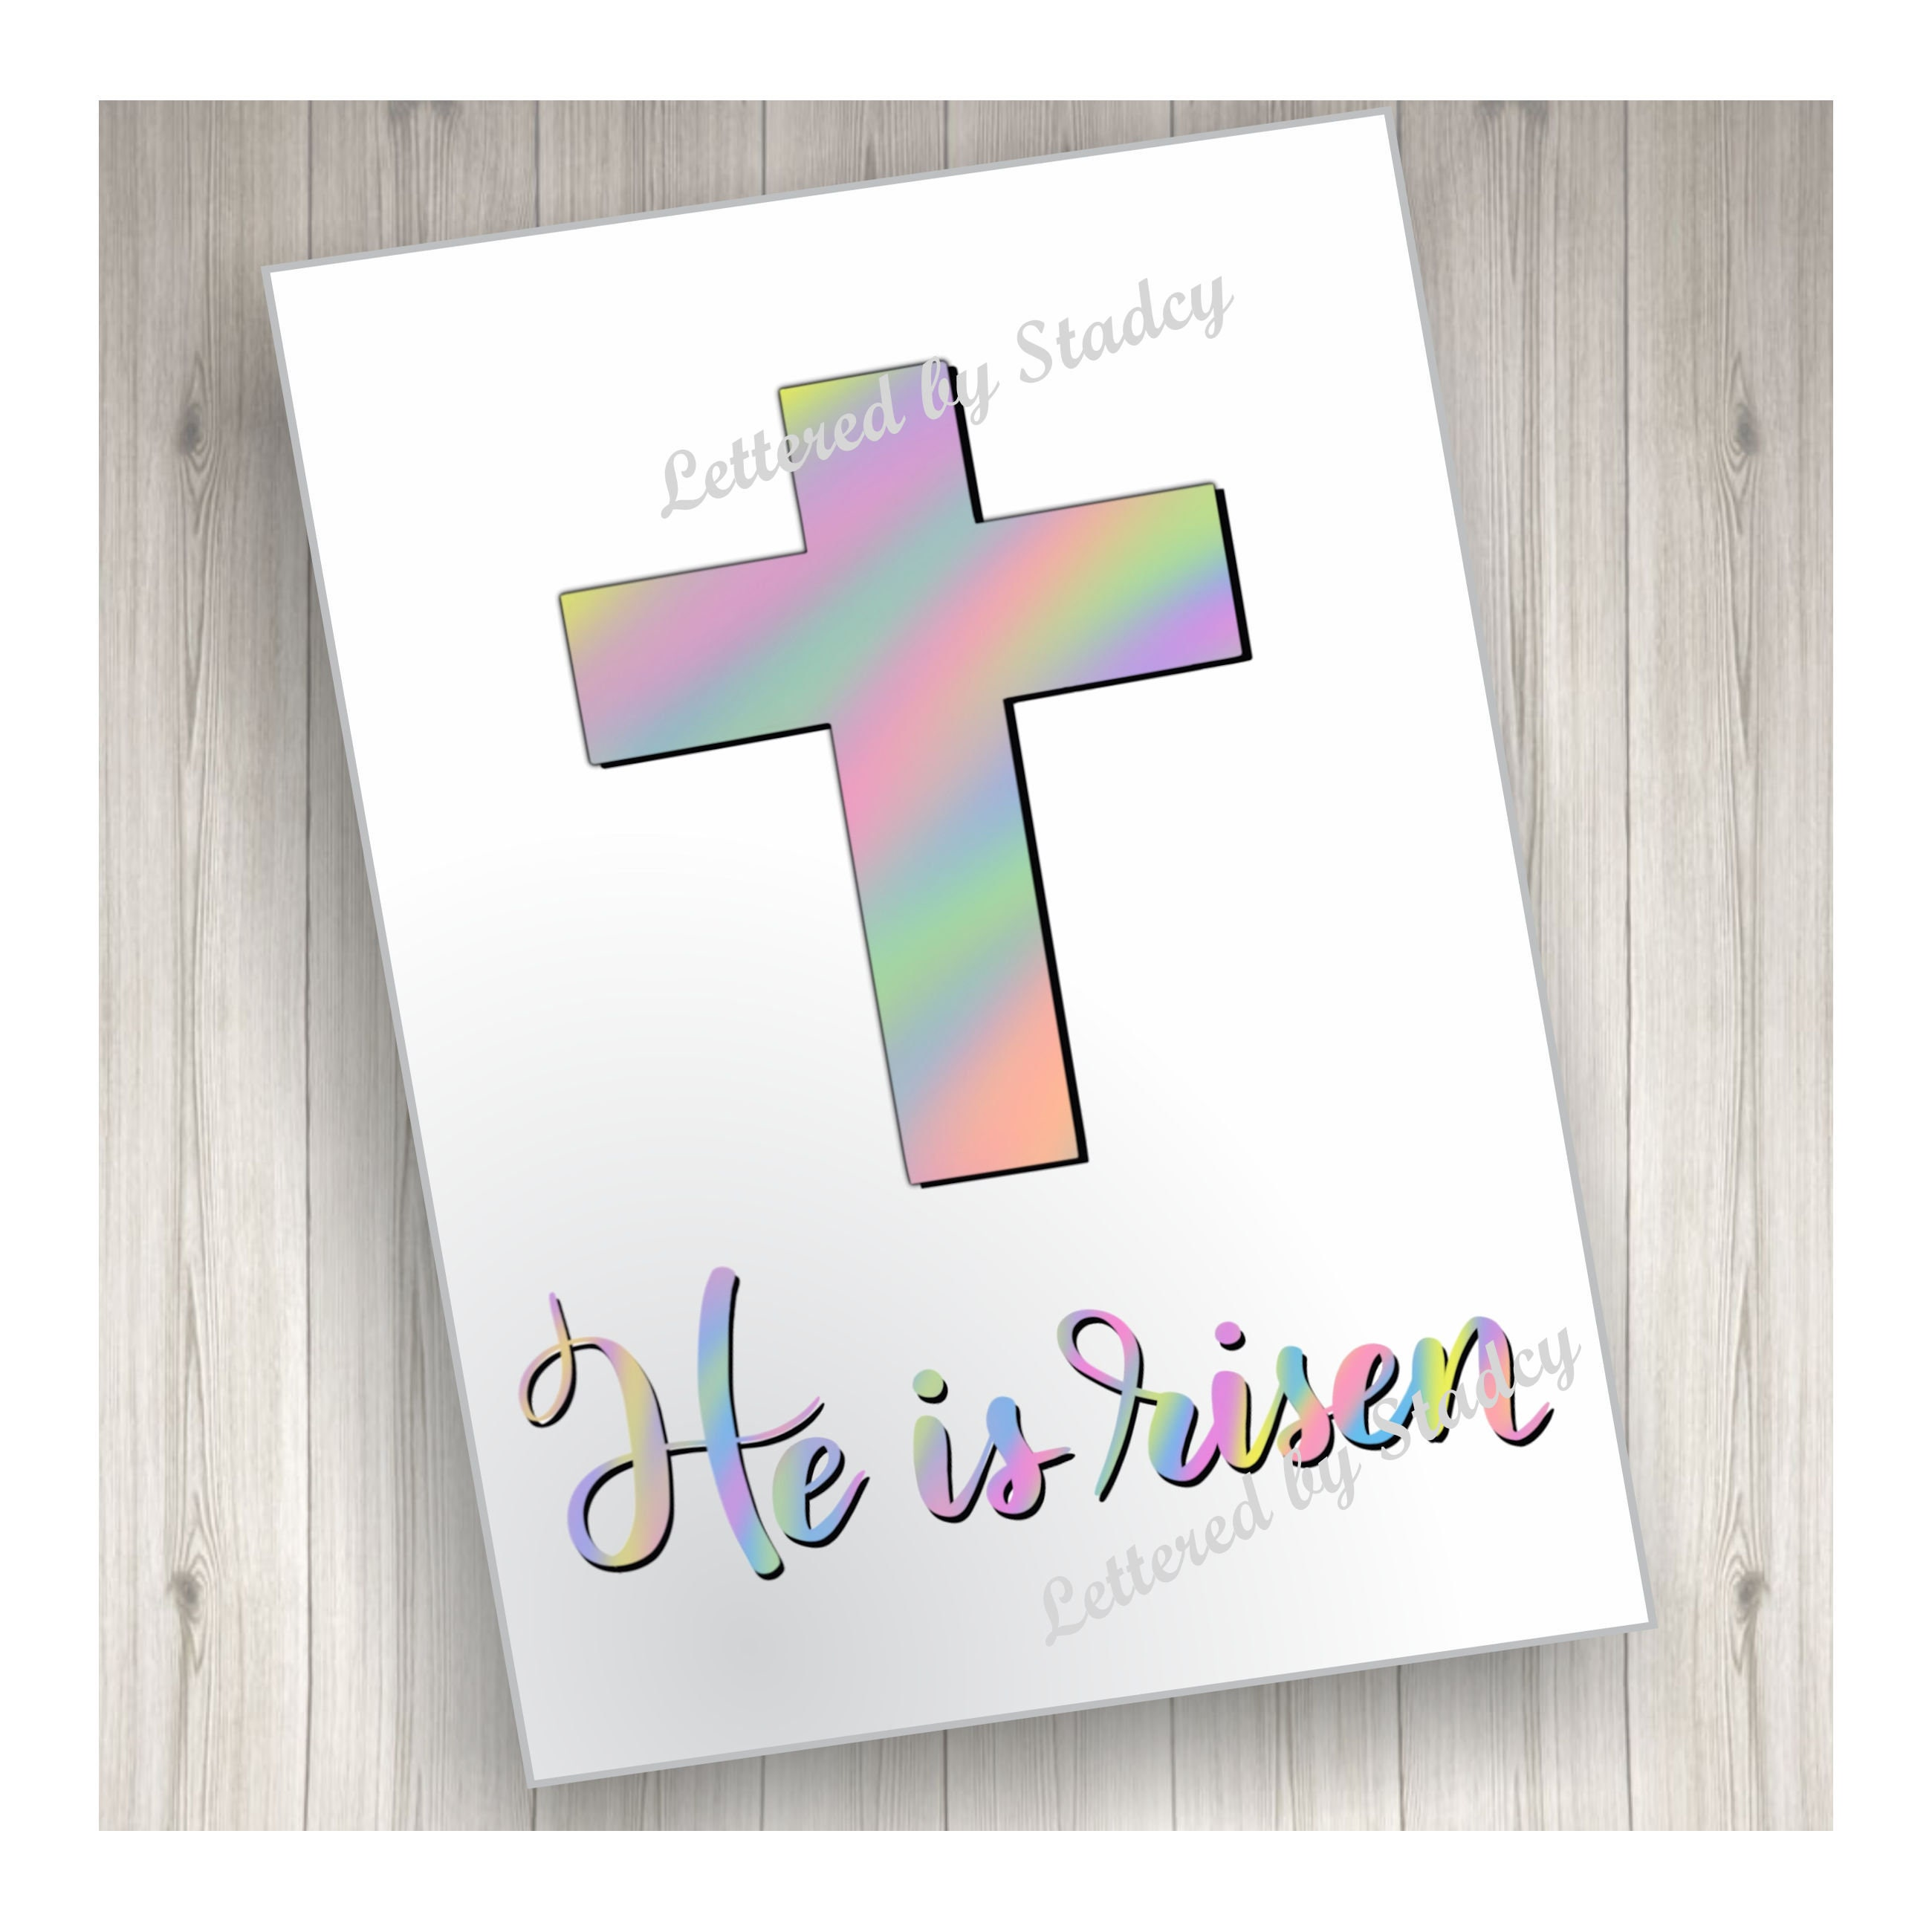 He Is Risen Card Easter Card Downloadable Card Printable Etsy